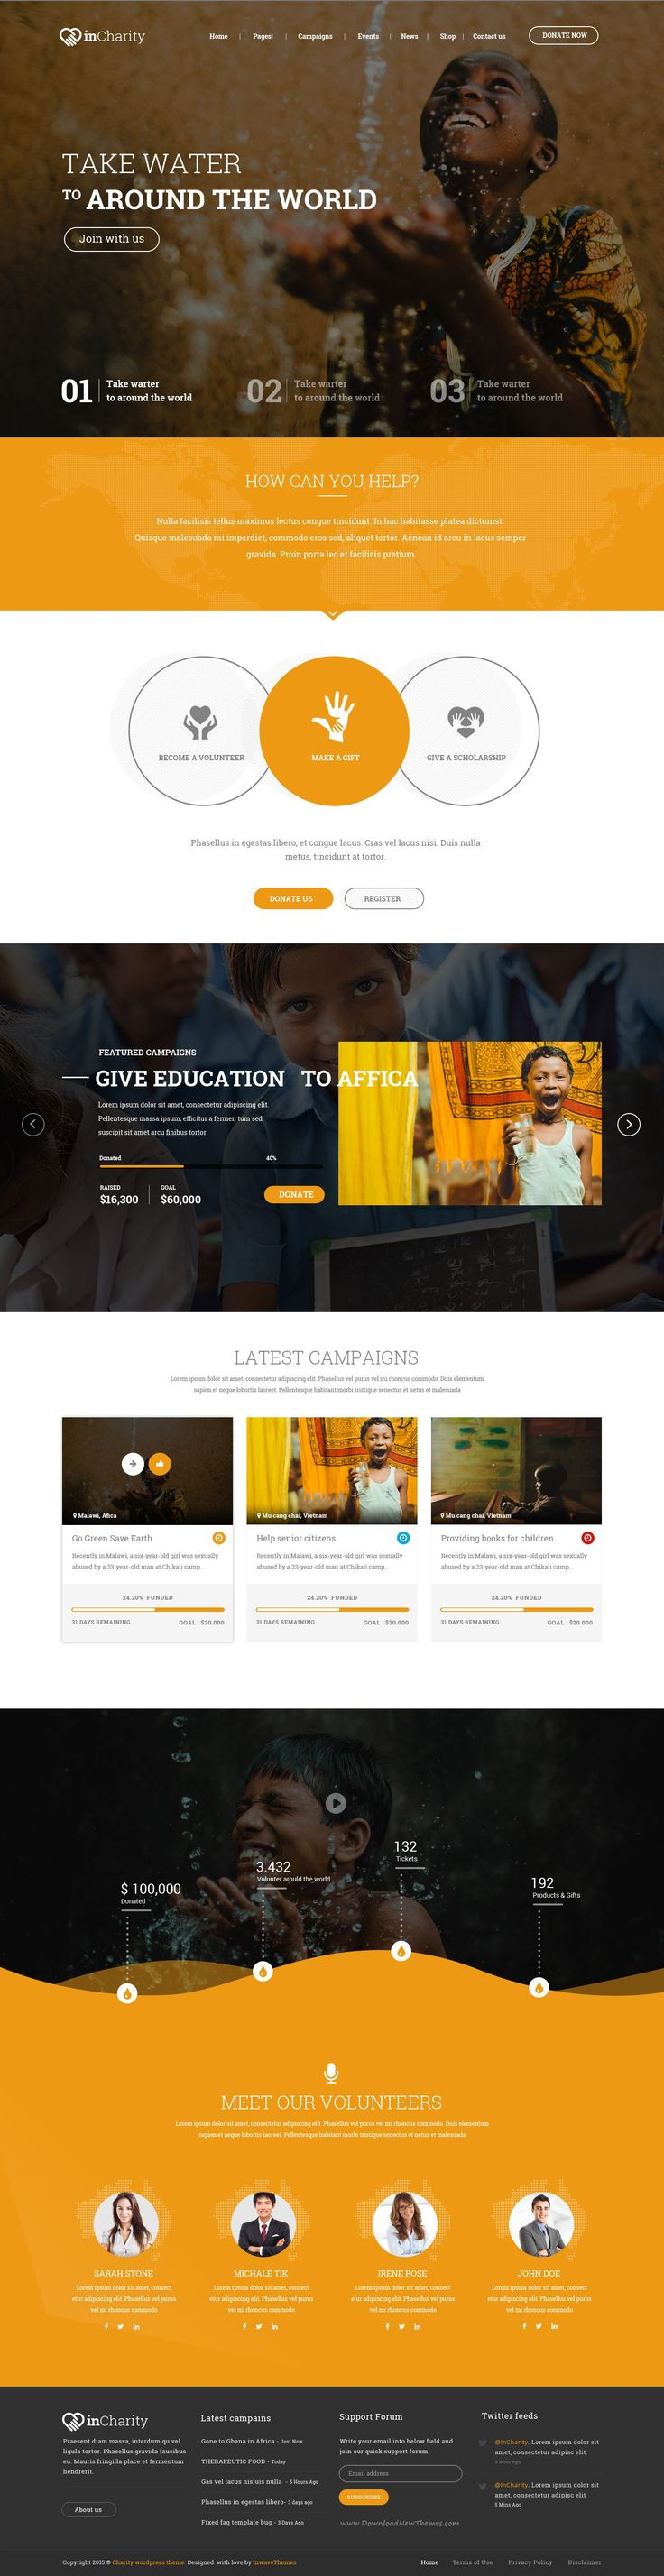 InCharity Might Be One Of The Best PSD Template At Themeforest For Charity,  Fundraising And